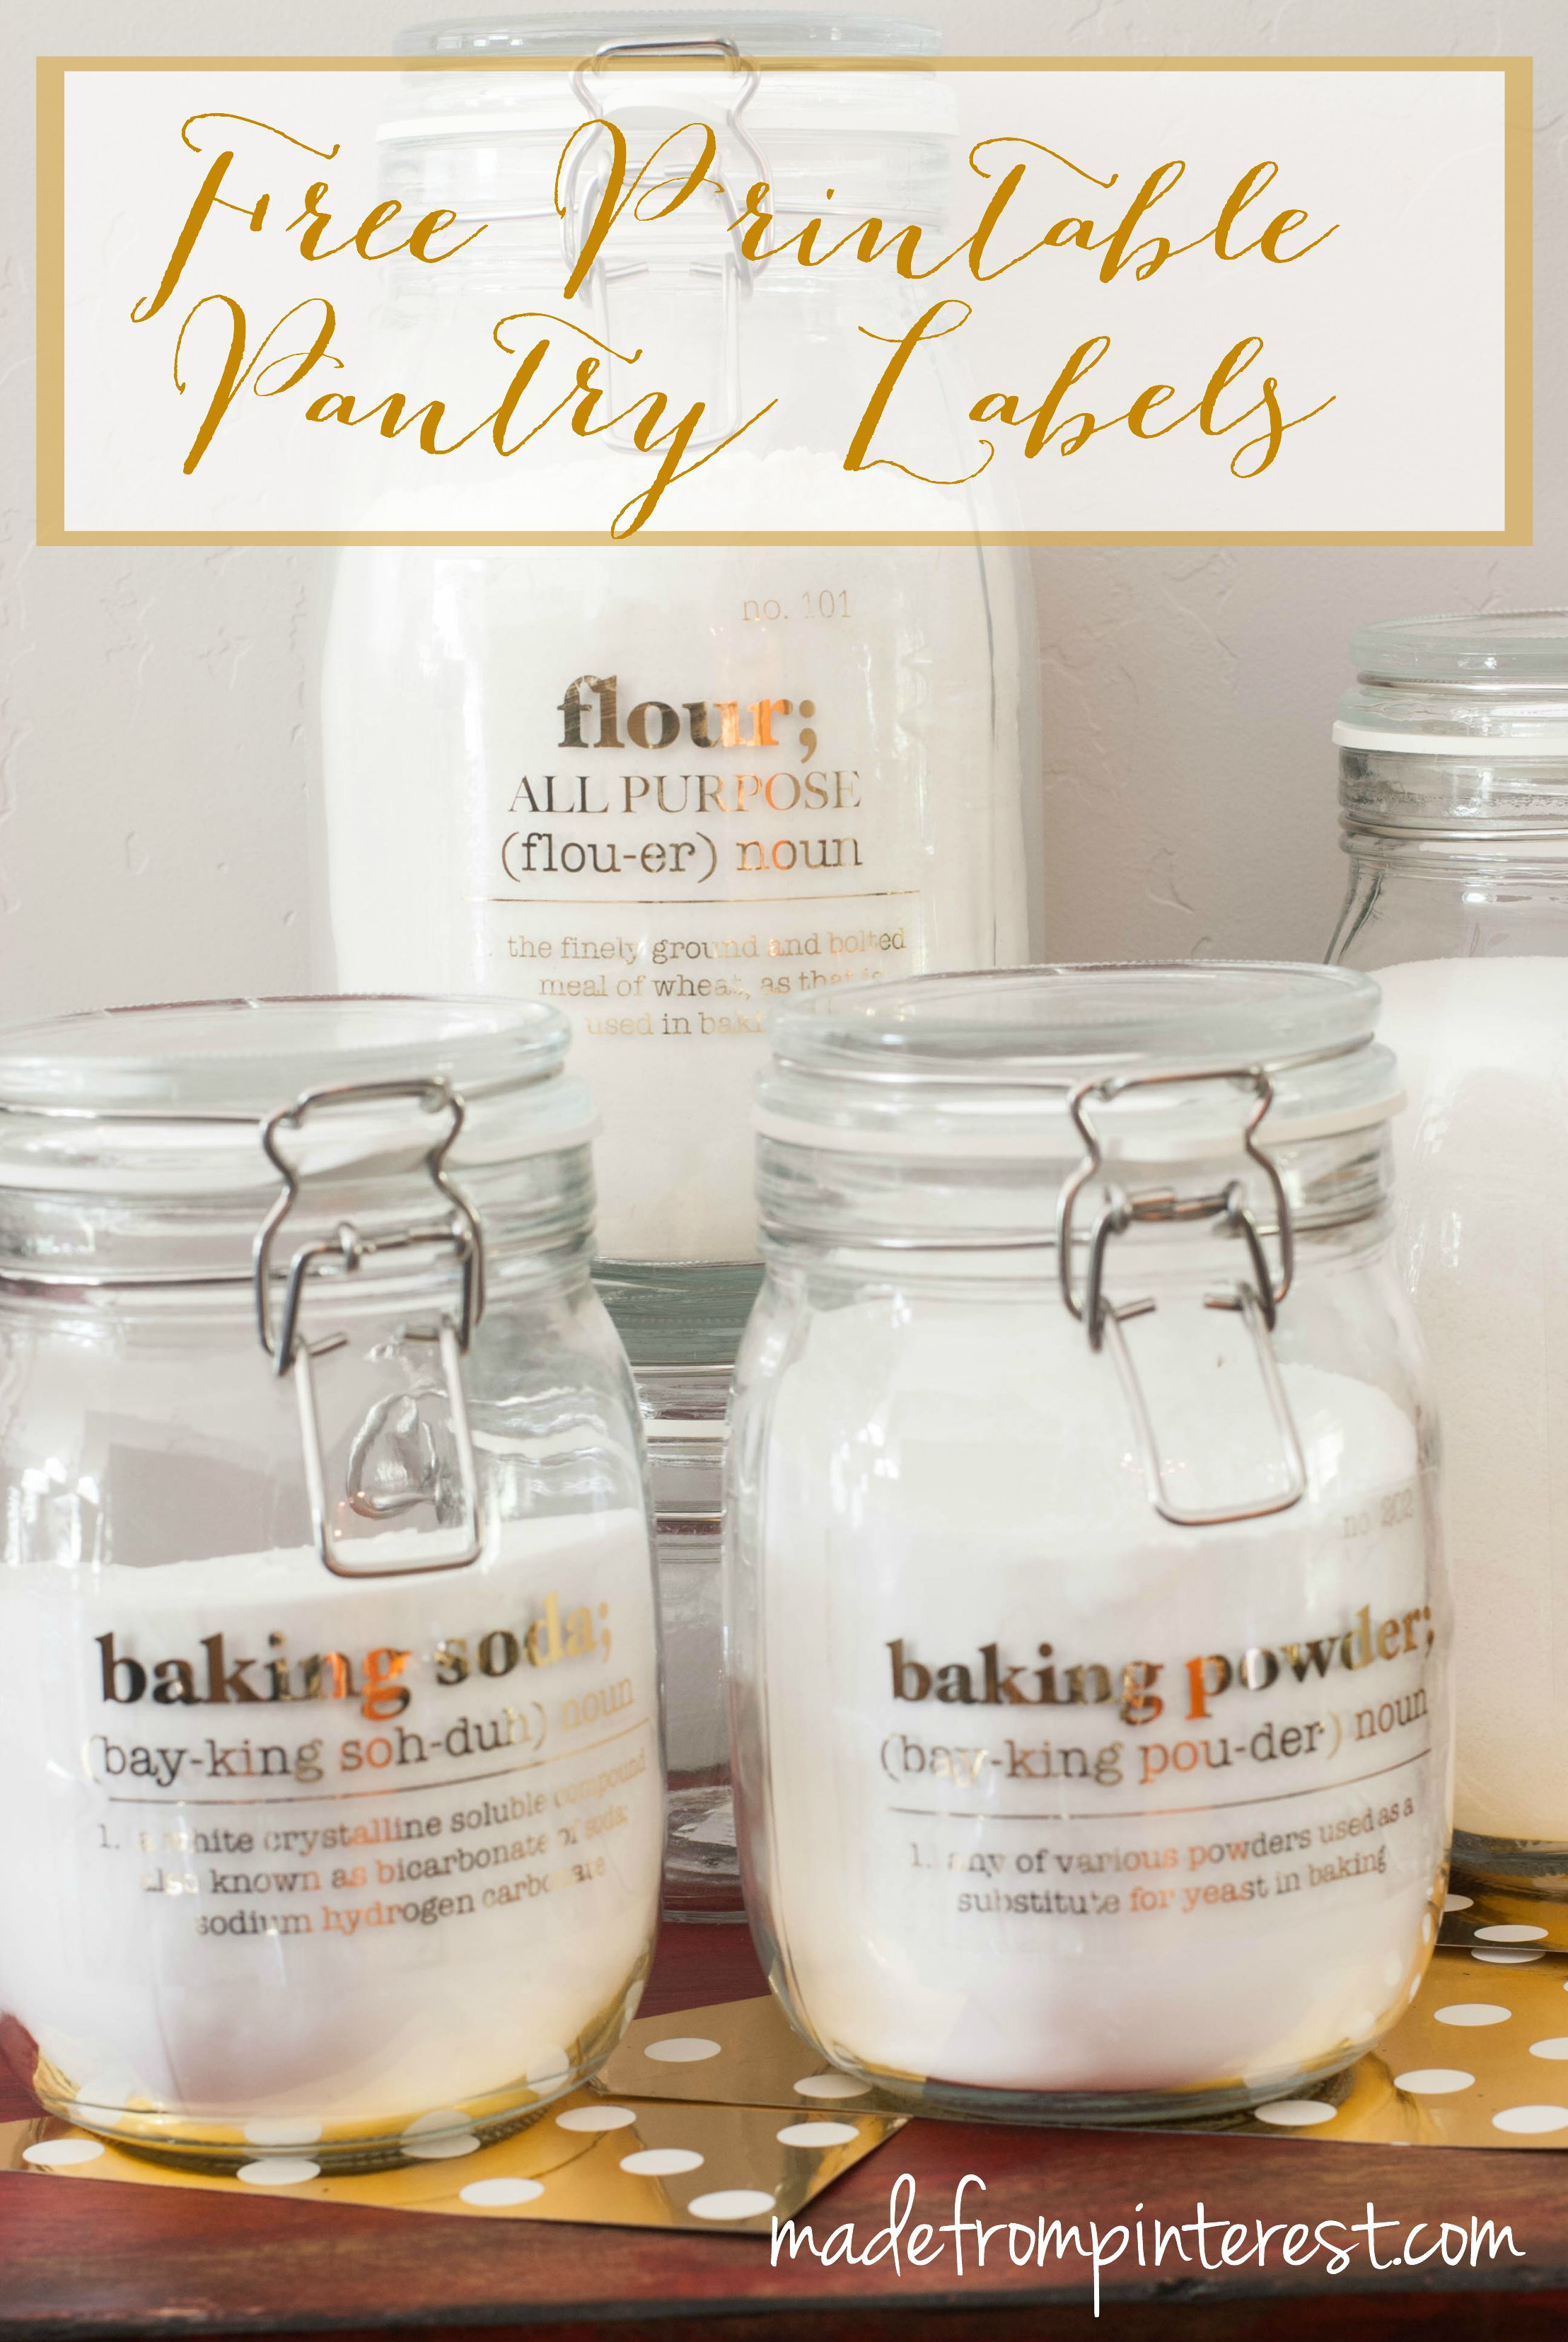 image about Printable Pantry Labels referred to as Totally free Printable Pantry Labels - TGIF - This Grandma is Enjoyable